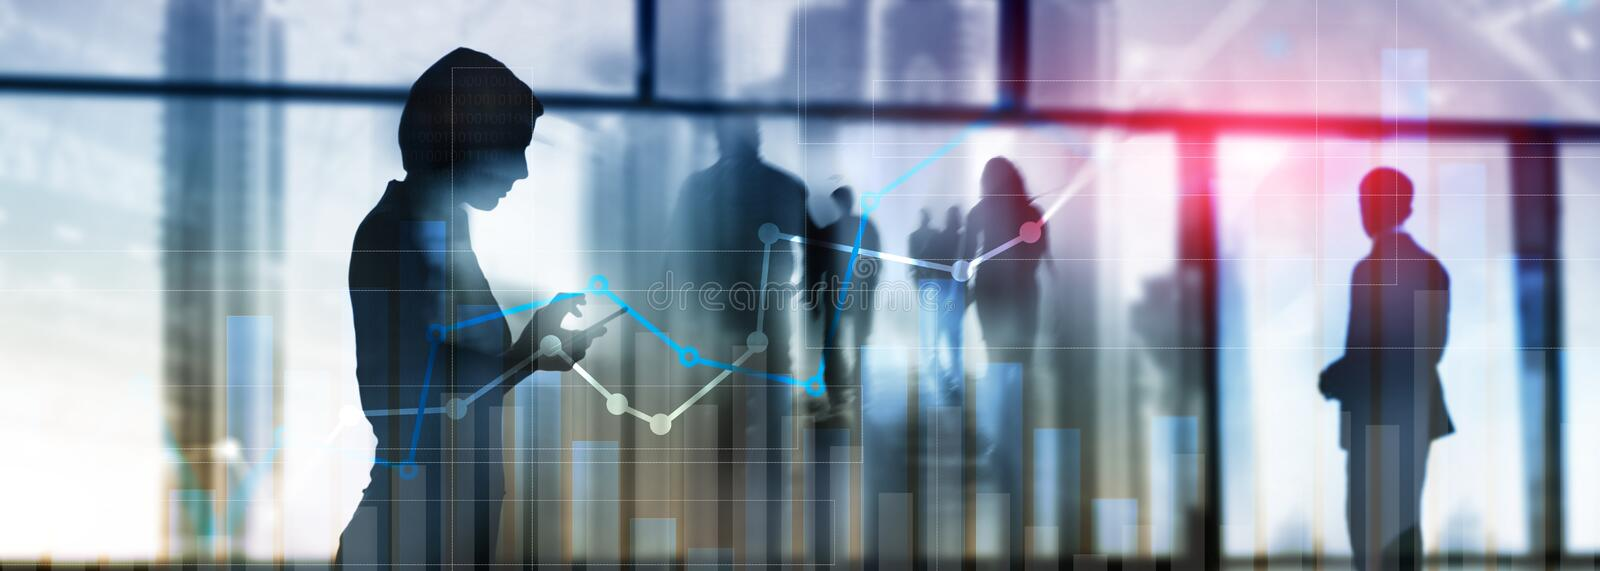 Financial growth graph. Sales increase, marketing strategy concept.  stock photography